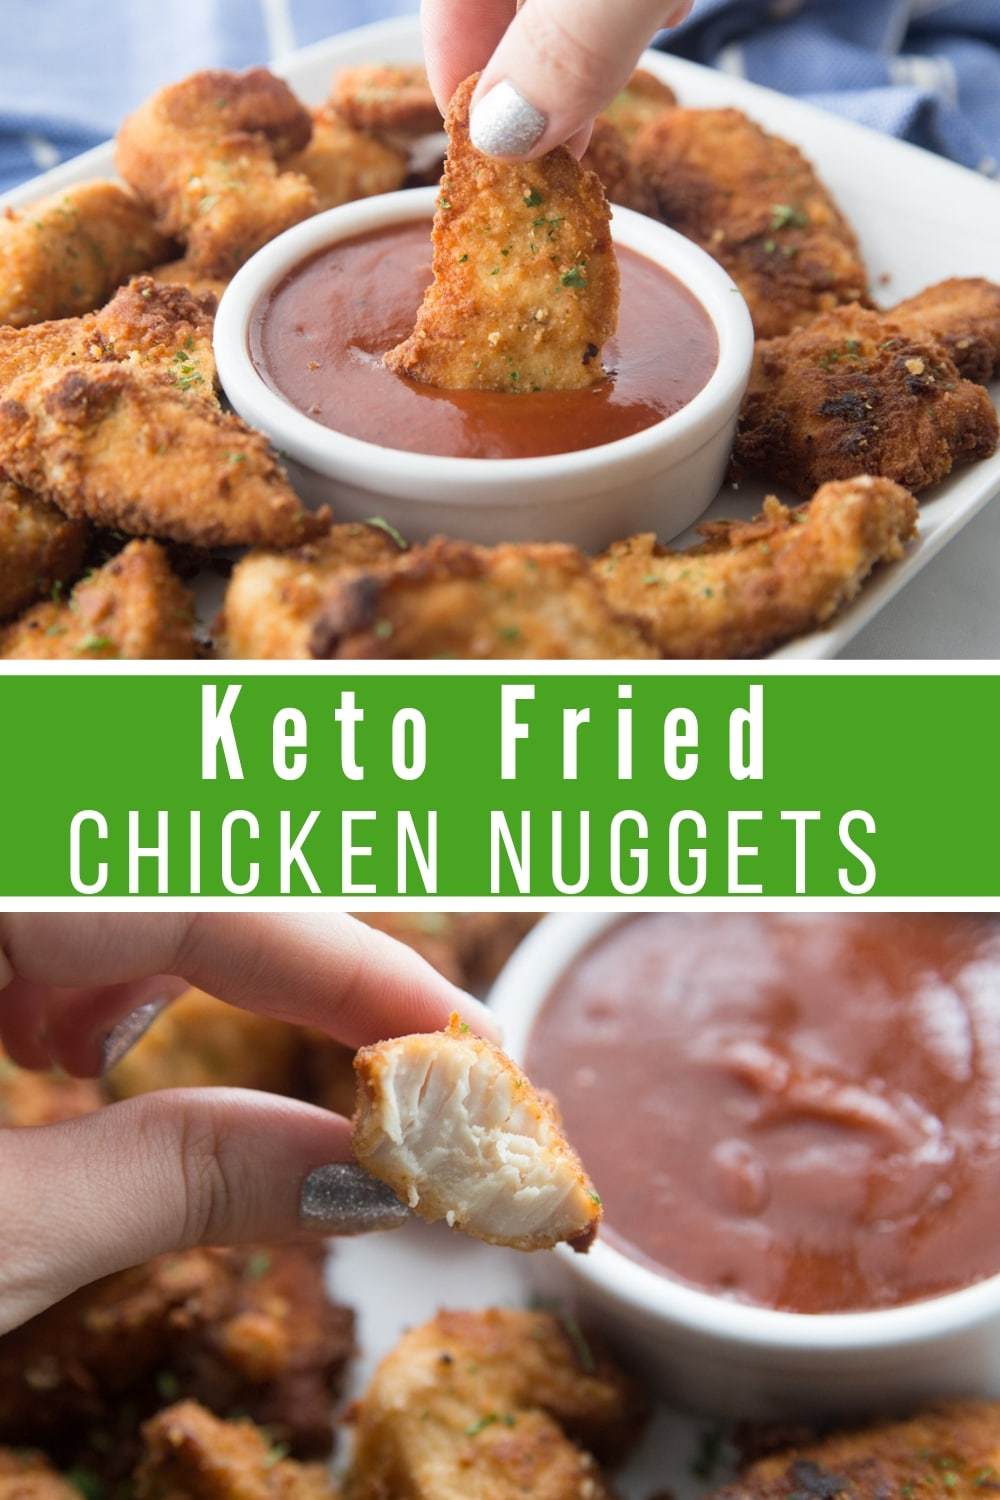 keto nuggets with a bite taken out being dipped into bbq sauce